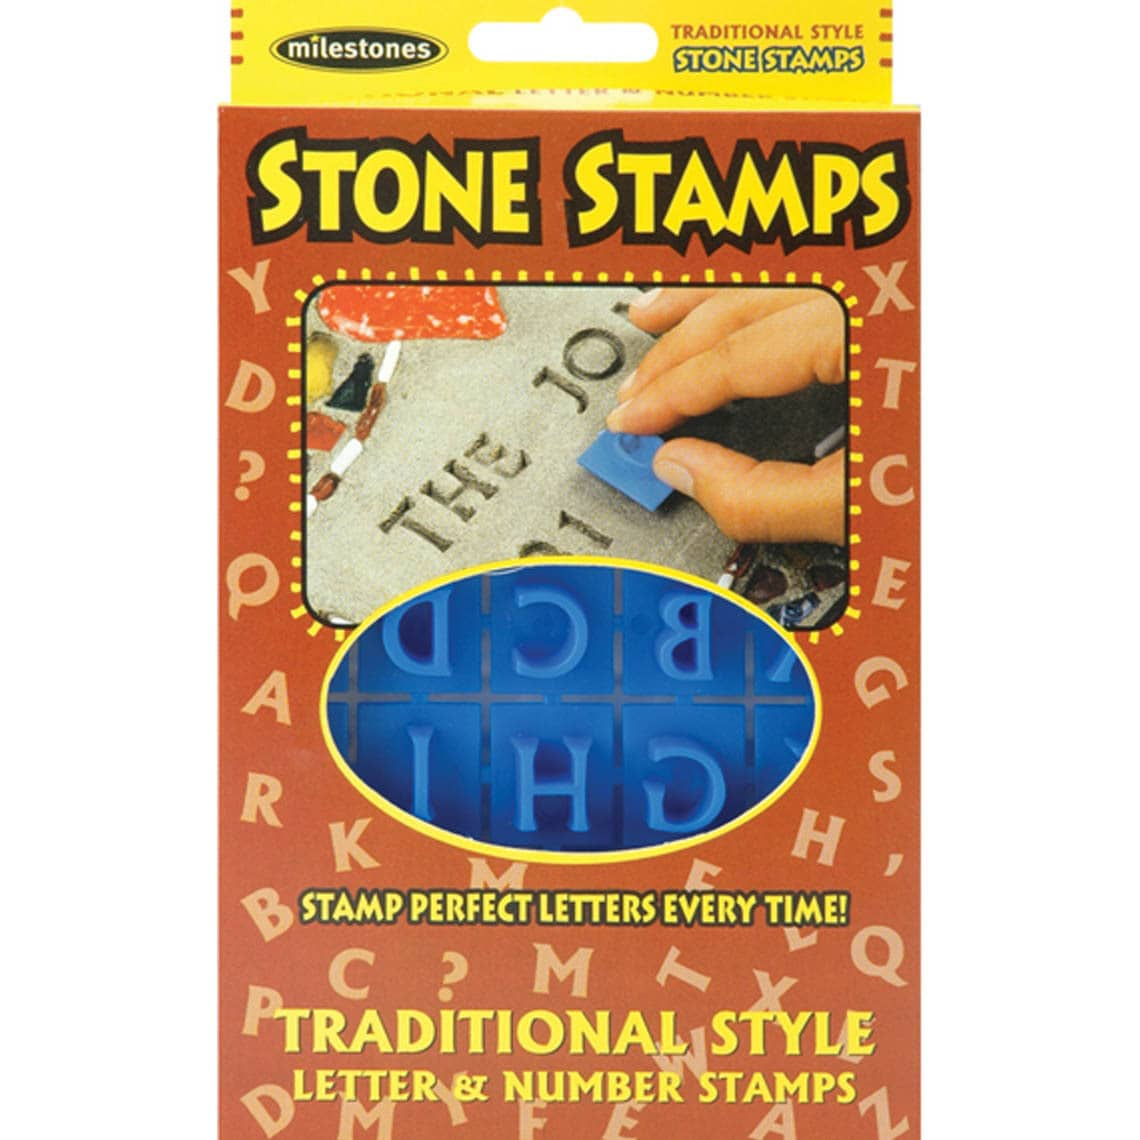 Stone Stamps-Traditional Style Letters & Numbers - image 2 of 4